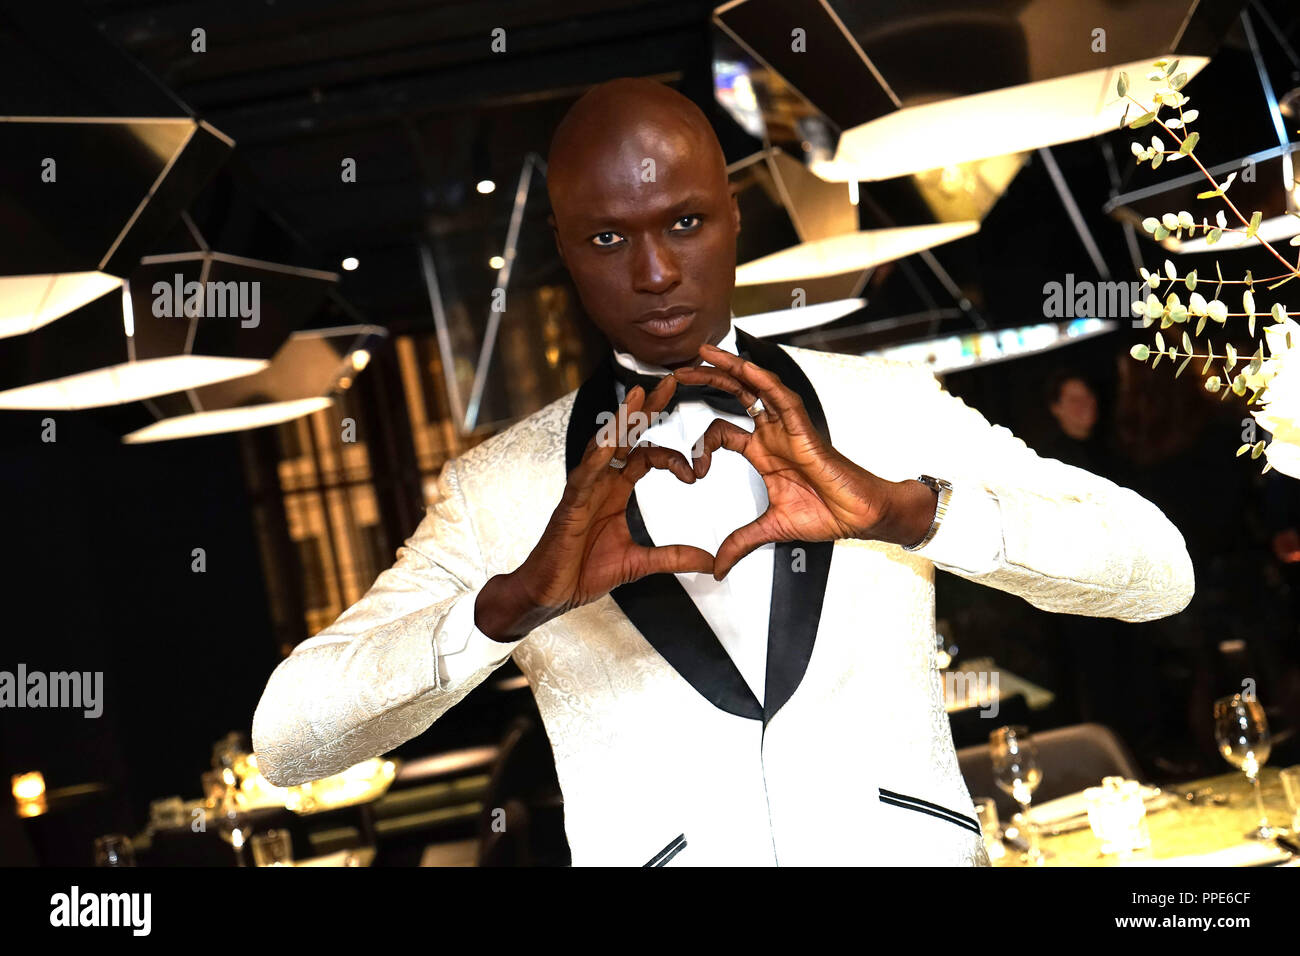 Model Papis Loveday forms the logo of the house with his hands at the opening of the first private member' club of Munich in the Old Stock Exchange building at Lenbachplatz. - Stock Image